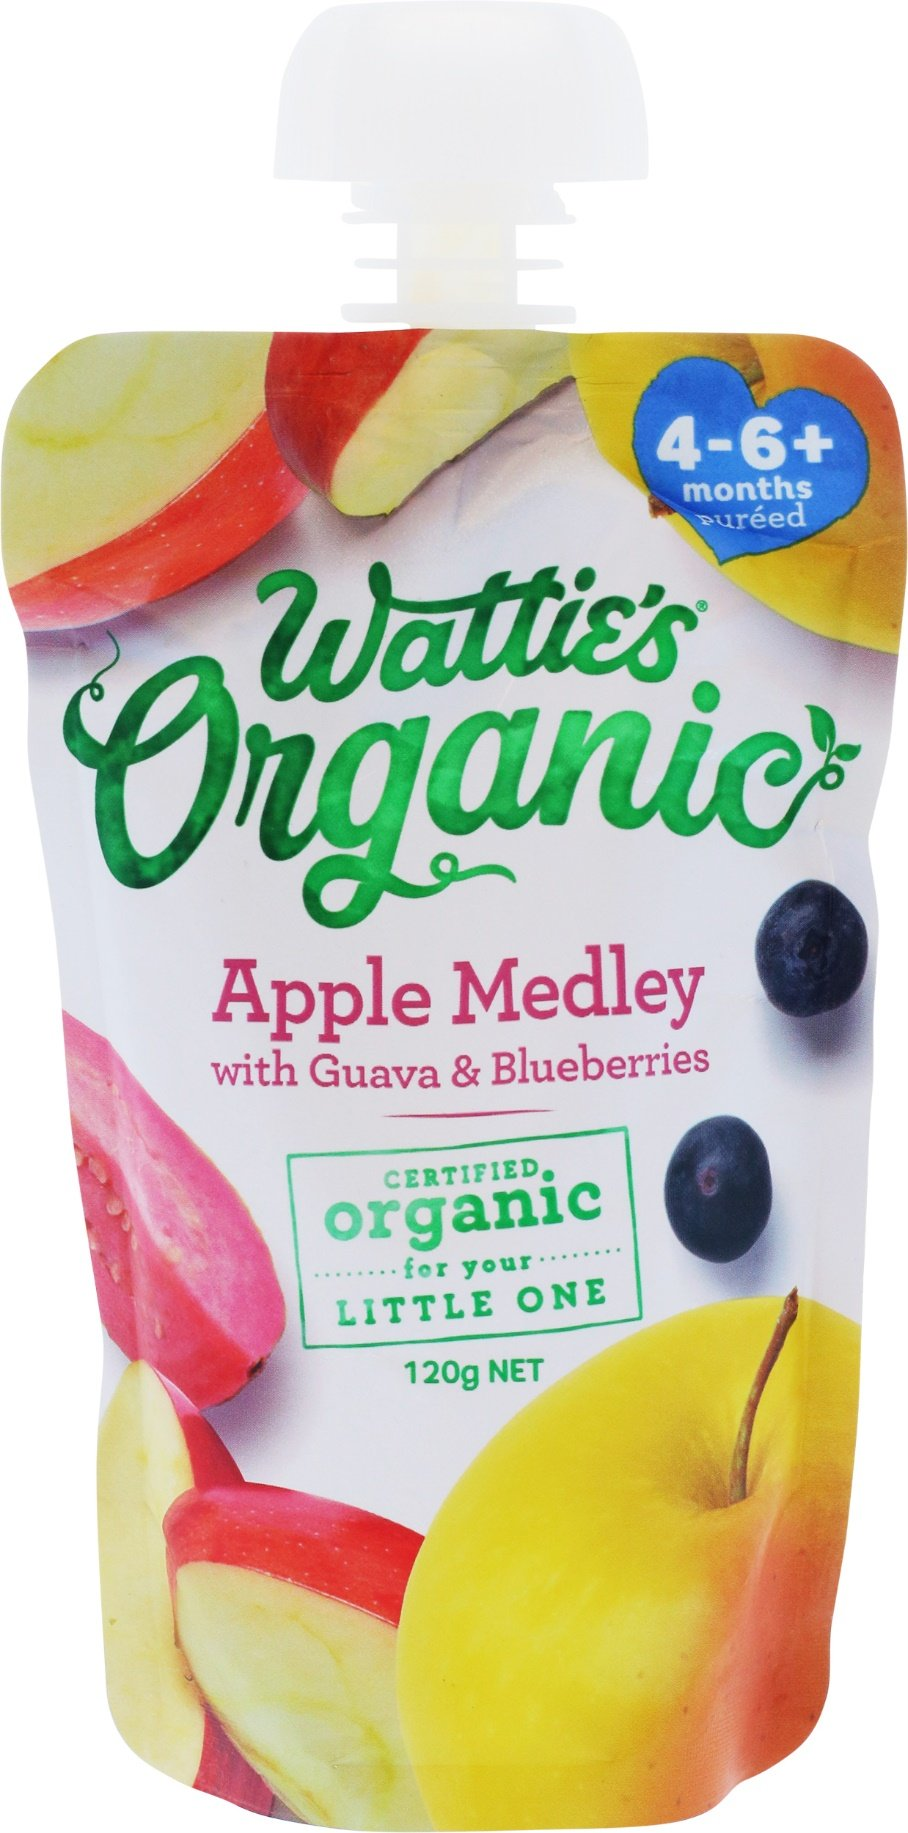 Wattie's Organic Apple Medley with Guava & Blueberries